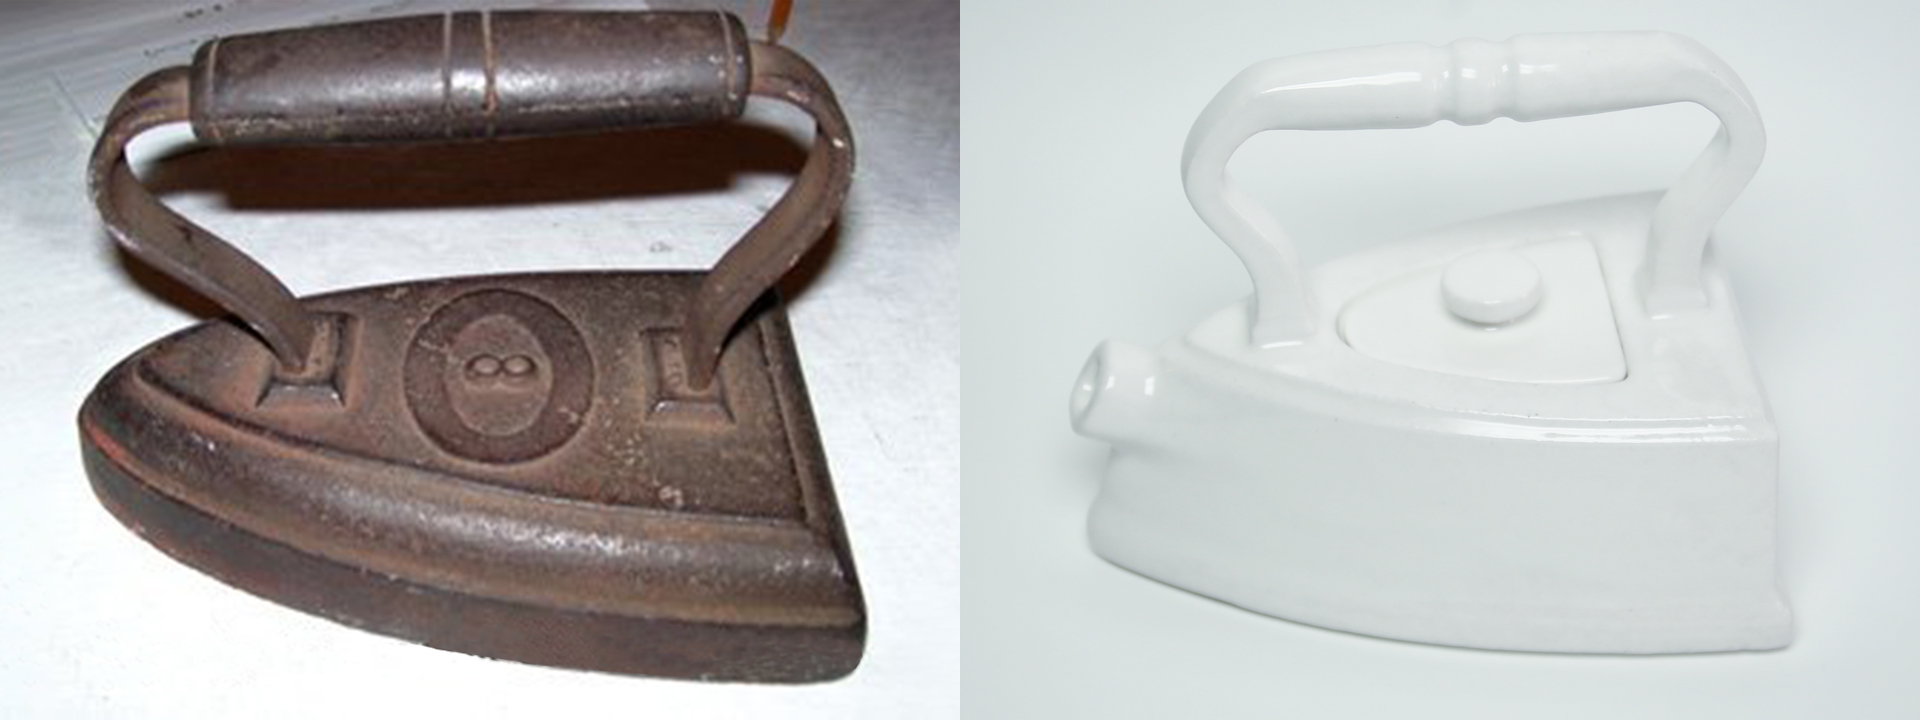 On left, a traditional iron. On right, a tea pot inspired by a traditional iron.